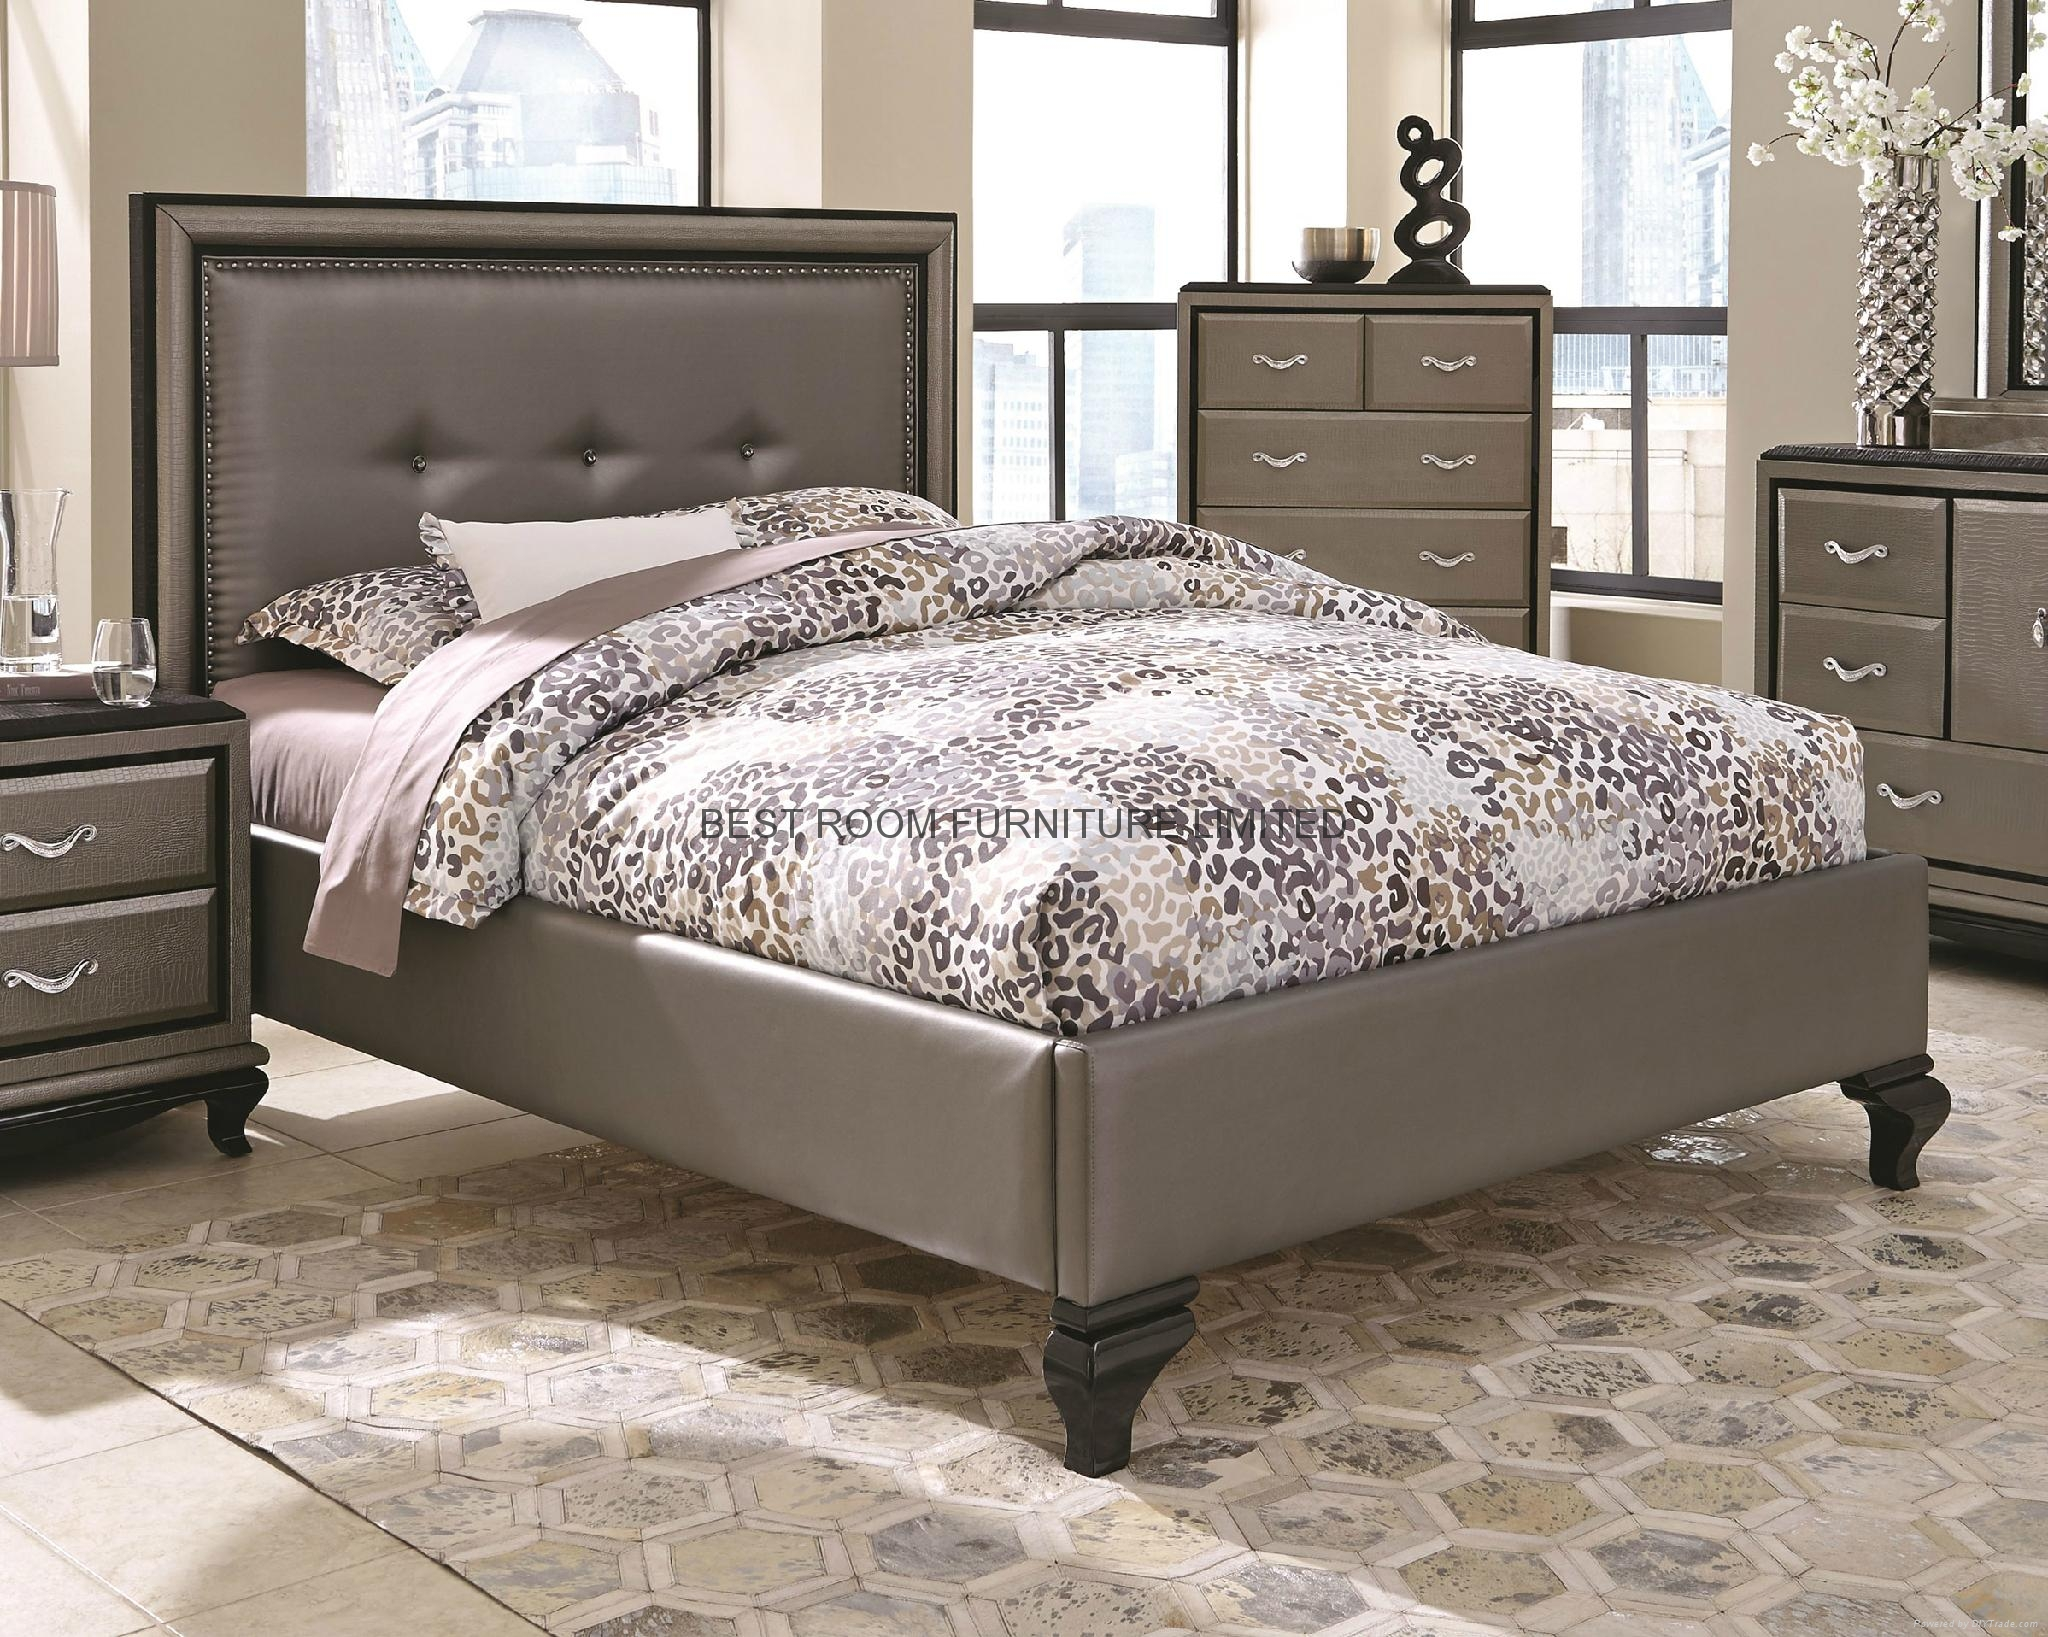 nails decor PU leather beds with night stands and side chest mirror and dresser  2